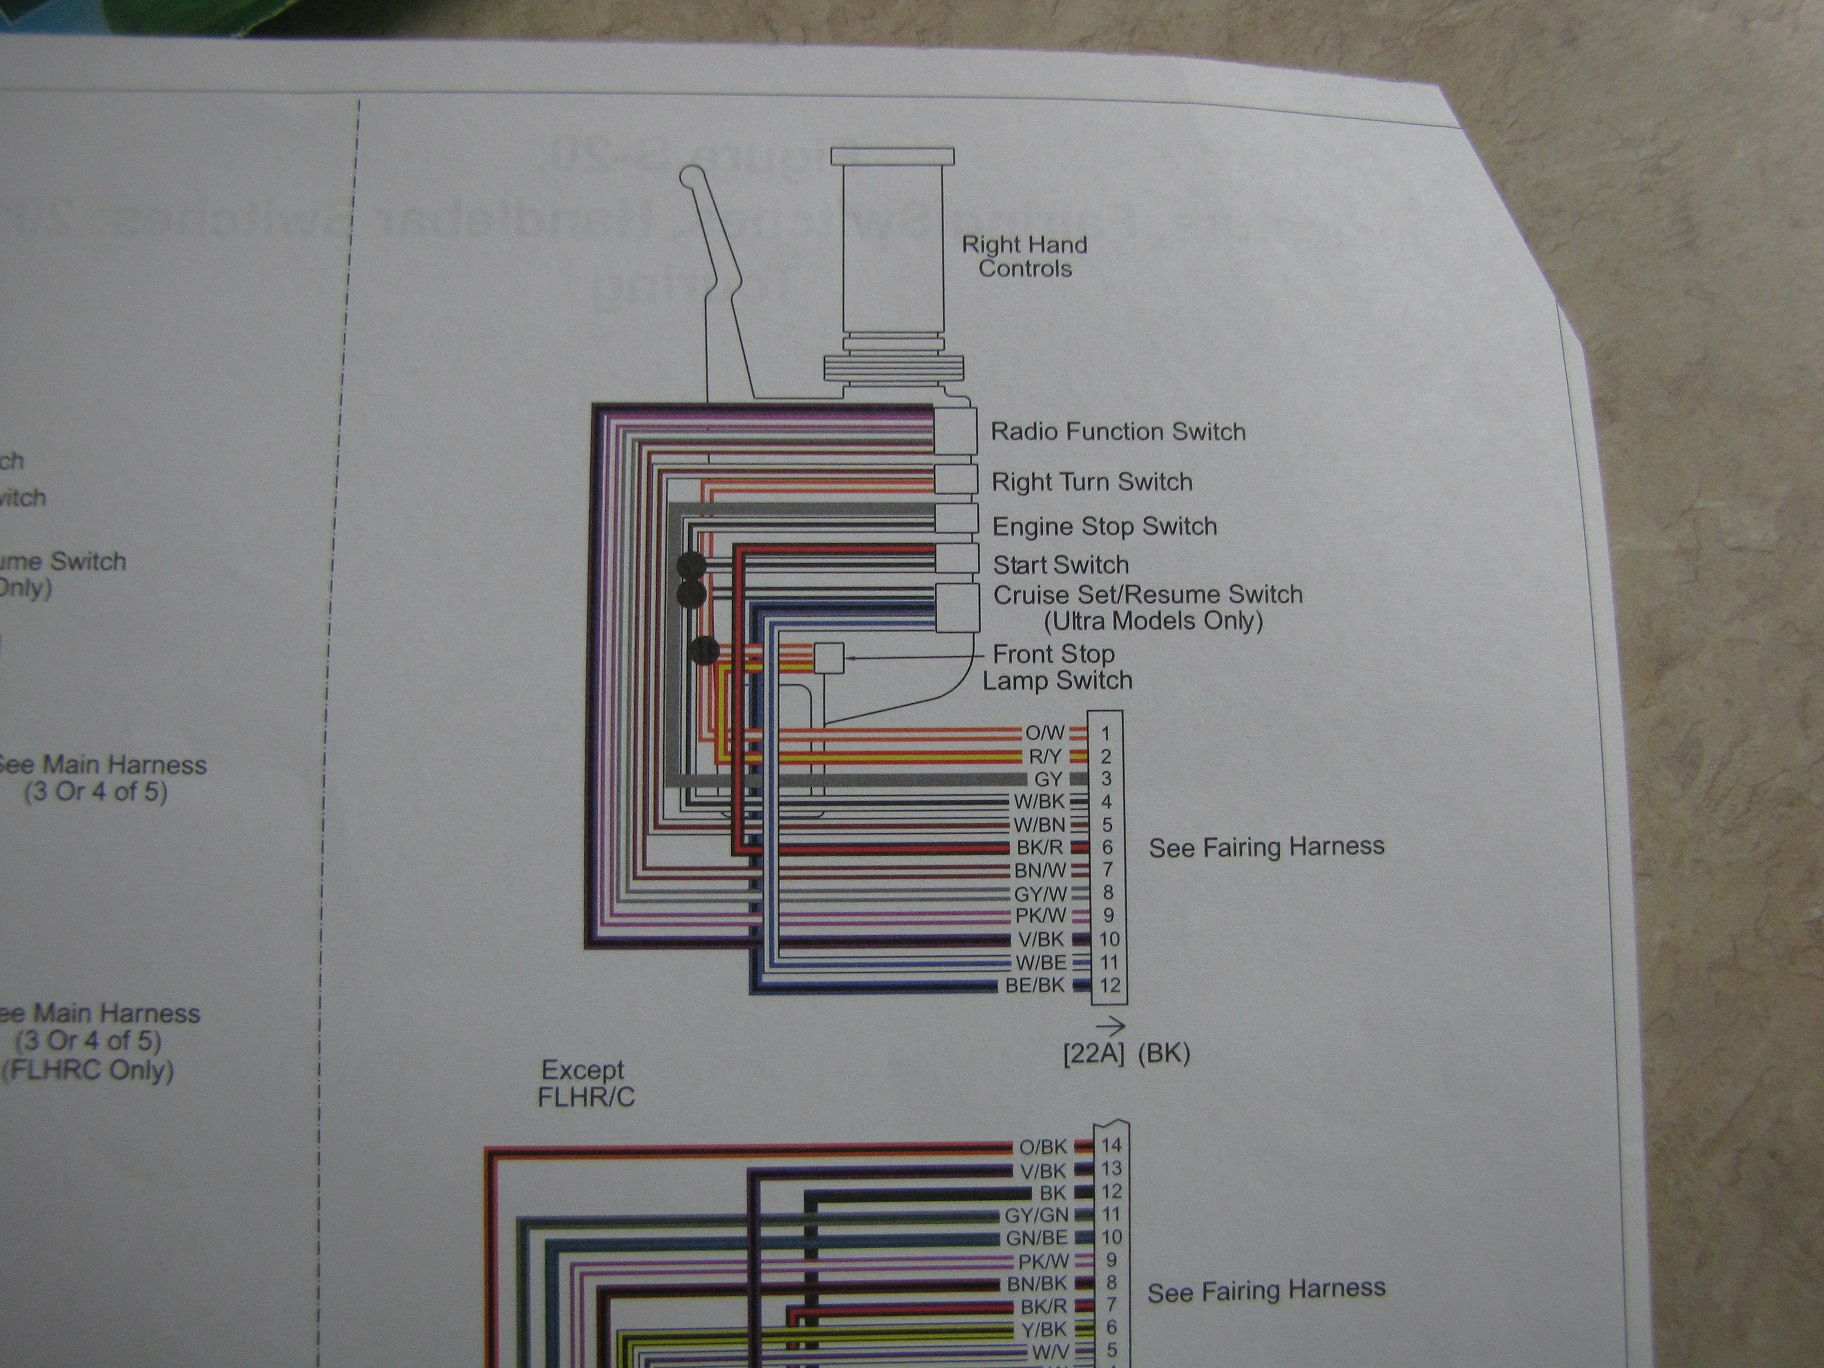 hight resolution of 2012 flhx wiring diagram wiring diagram online rh 18 ccainternational de 2002 dyna glide wiring diagrams harley davidson wiring diagram manual